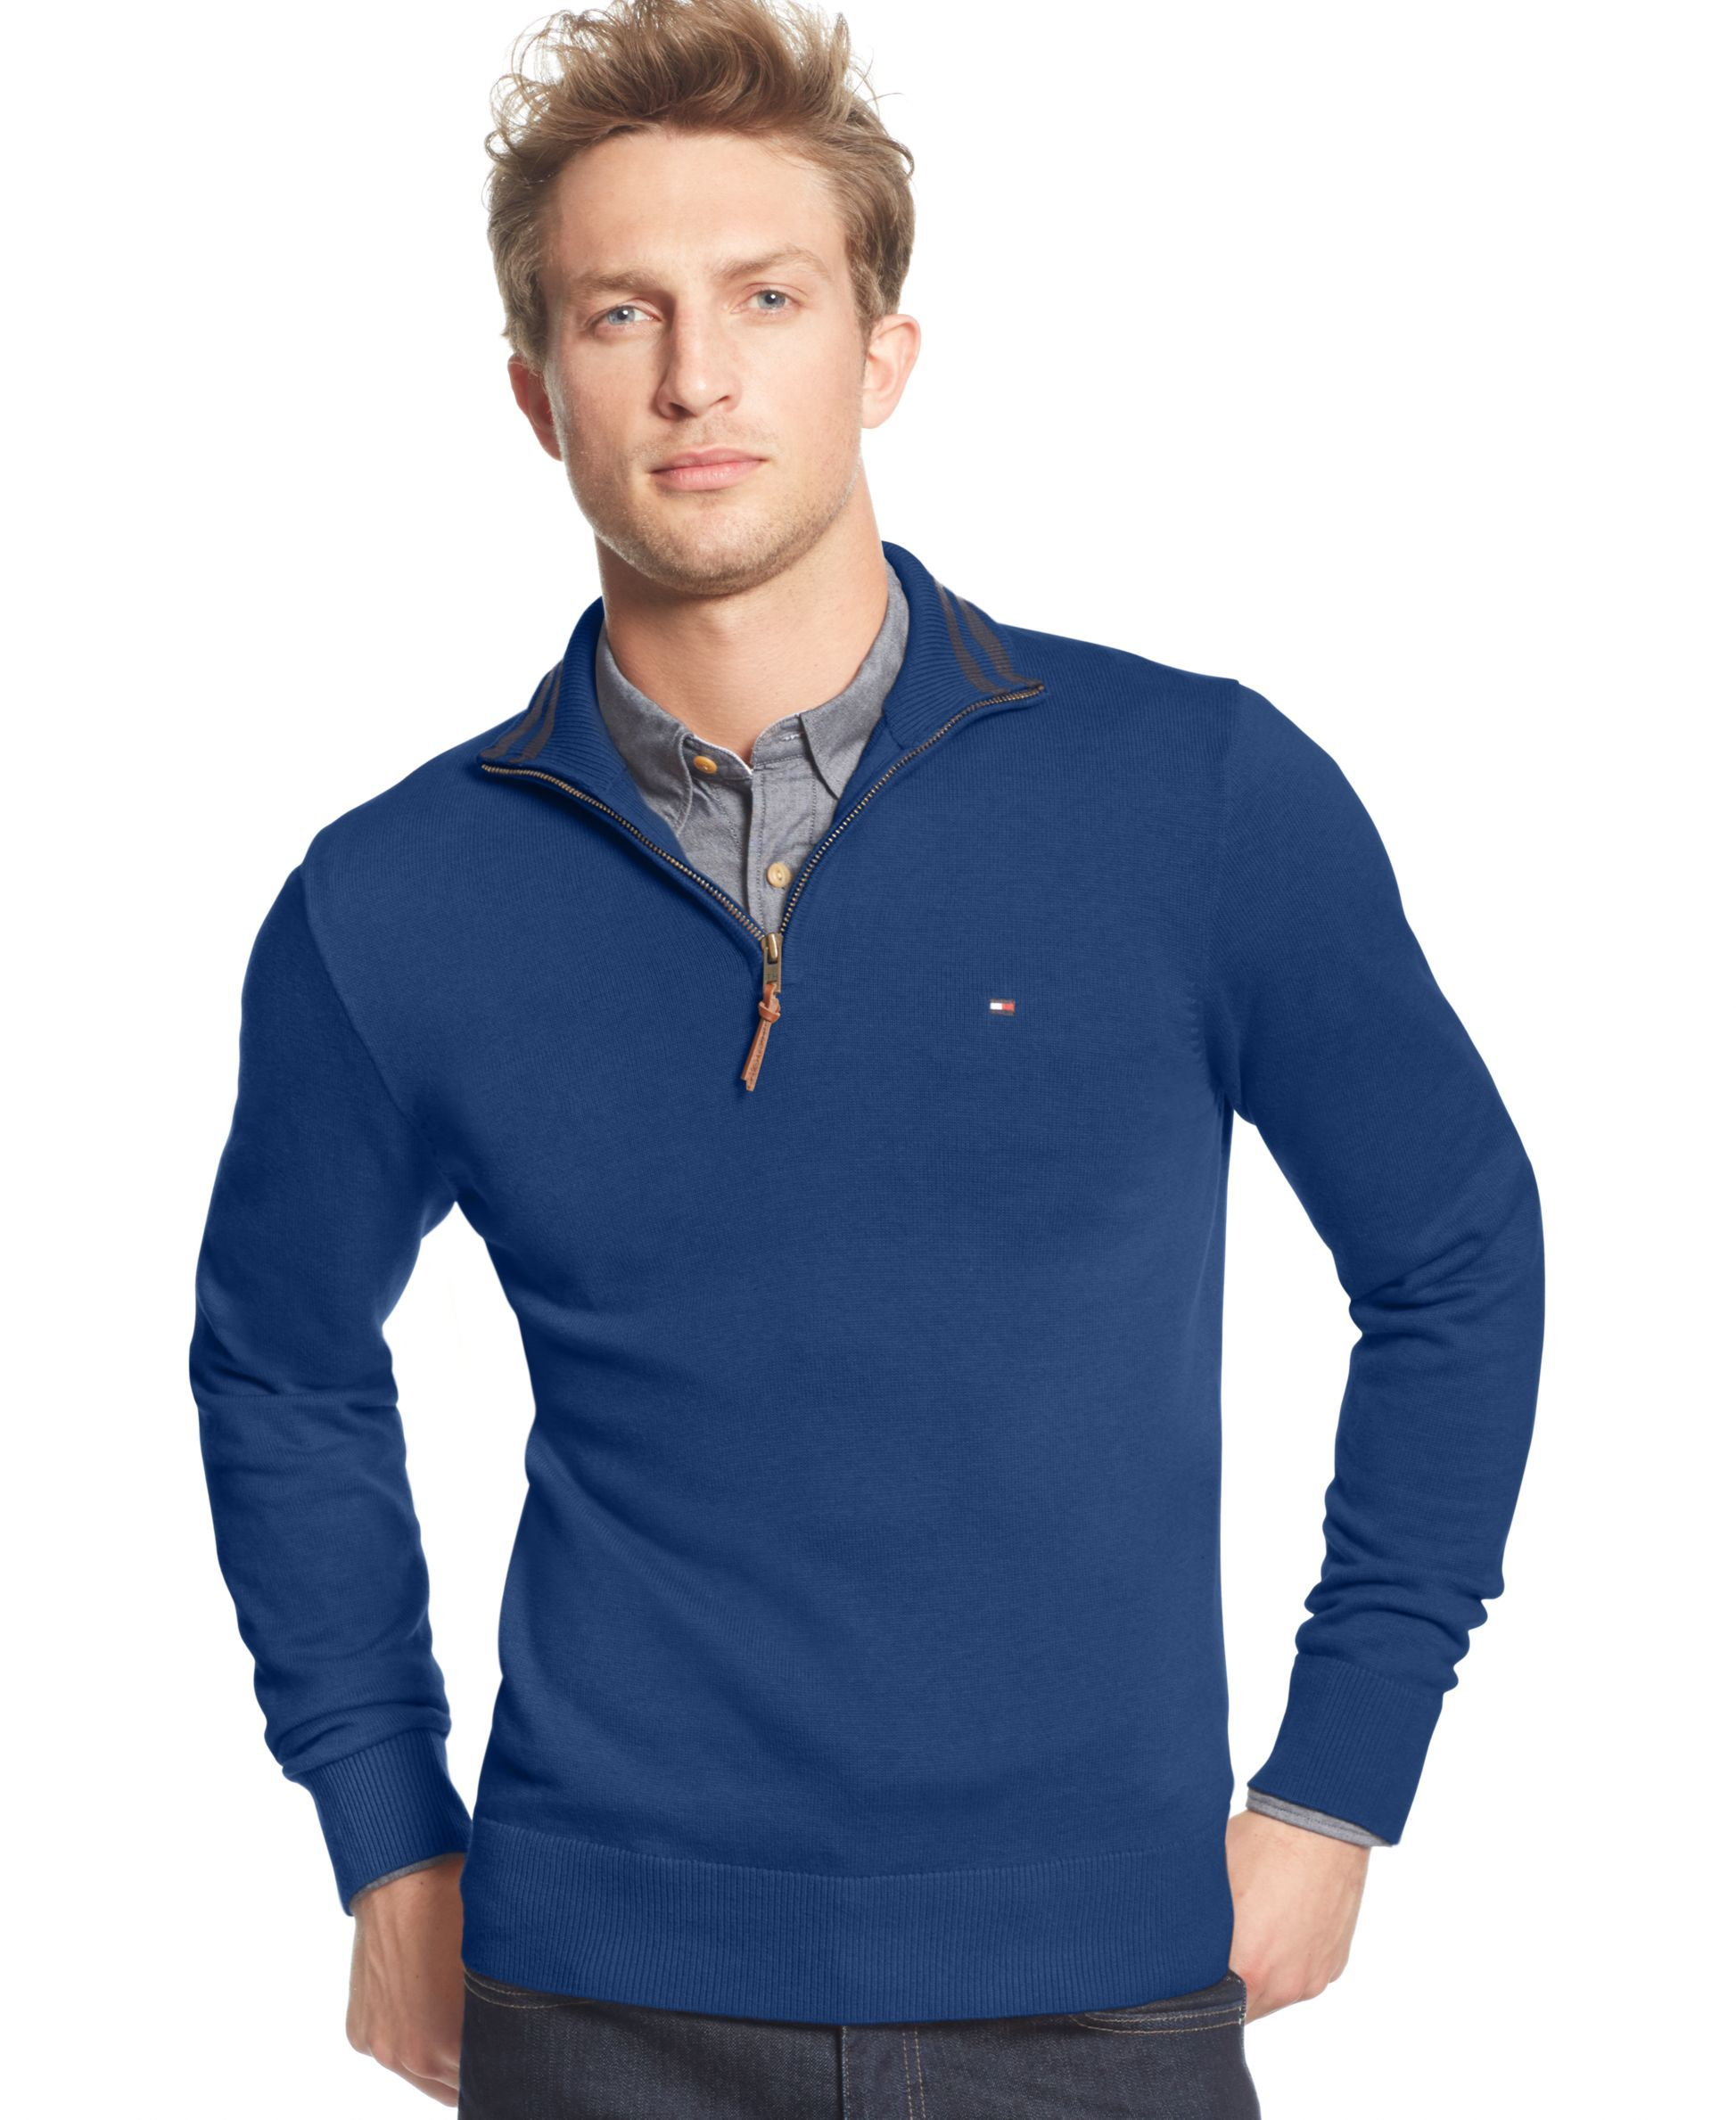 tommy hilfiger 39 s signature style pullover sweater looks great layered or alone cotton. Black Bedroom Furniture Sets. Home Design Ideas